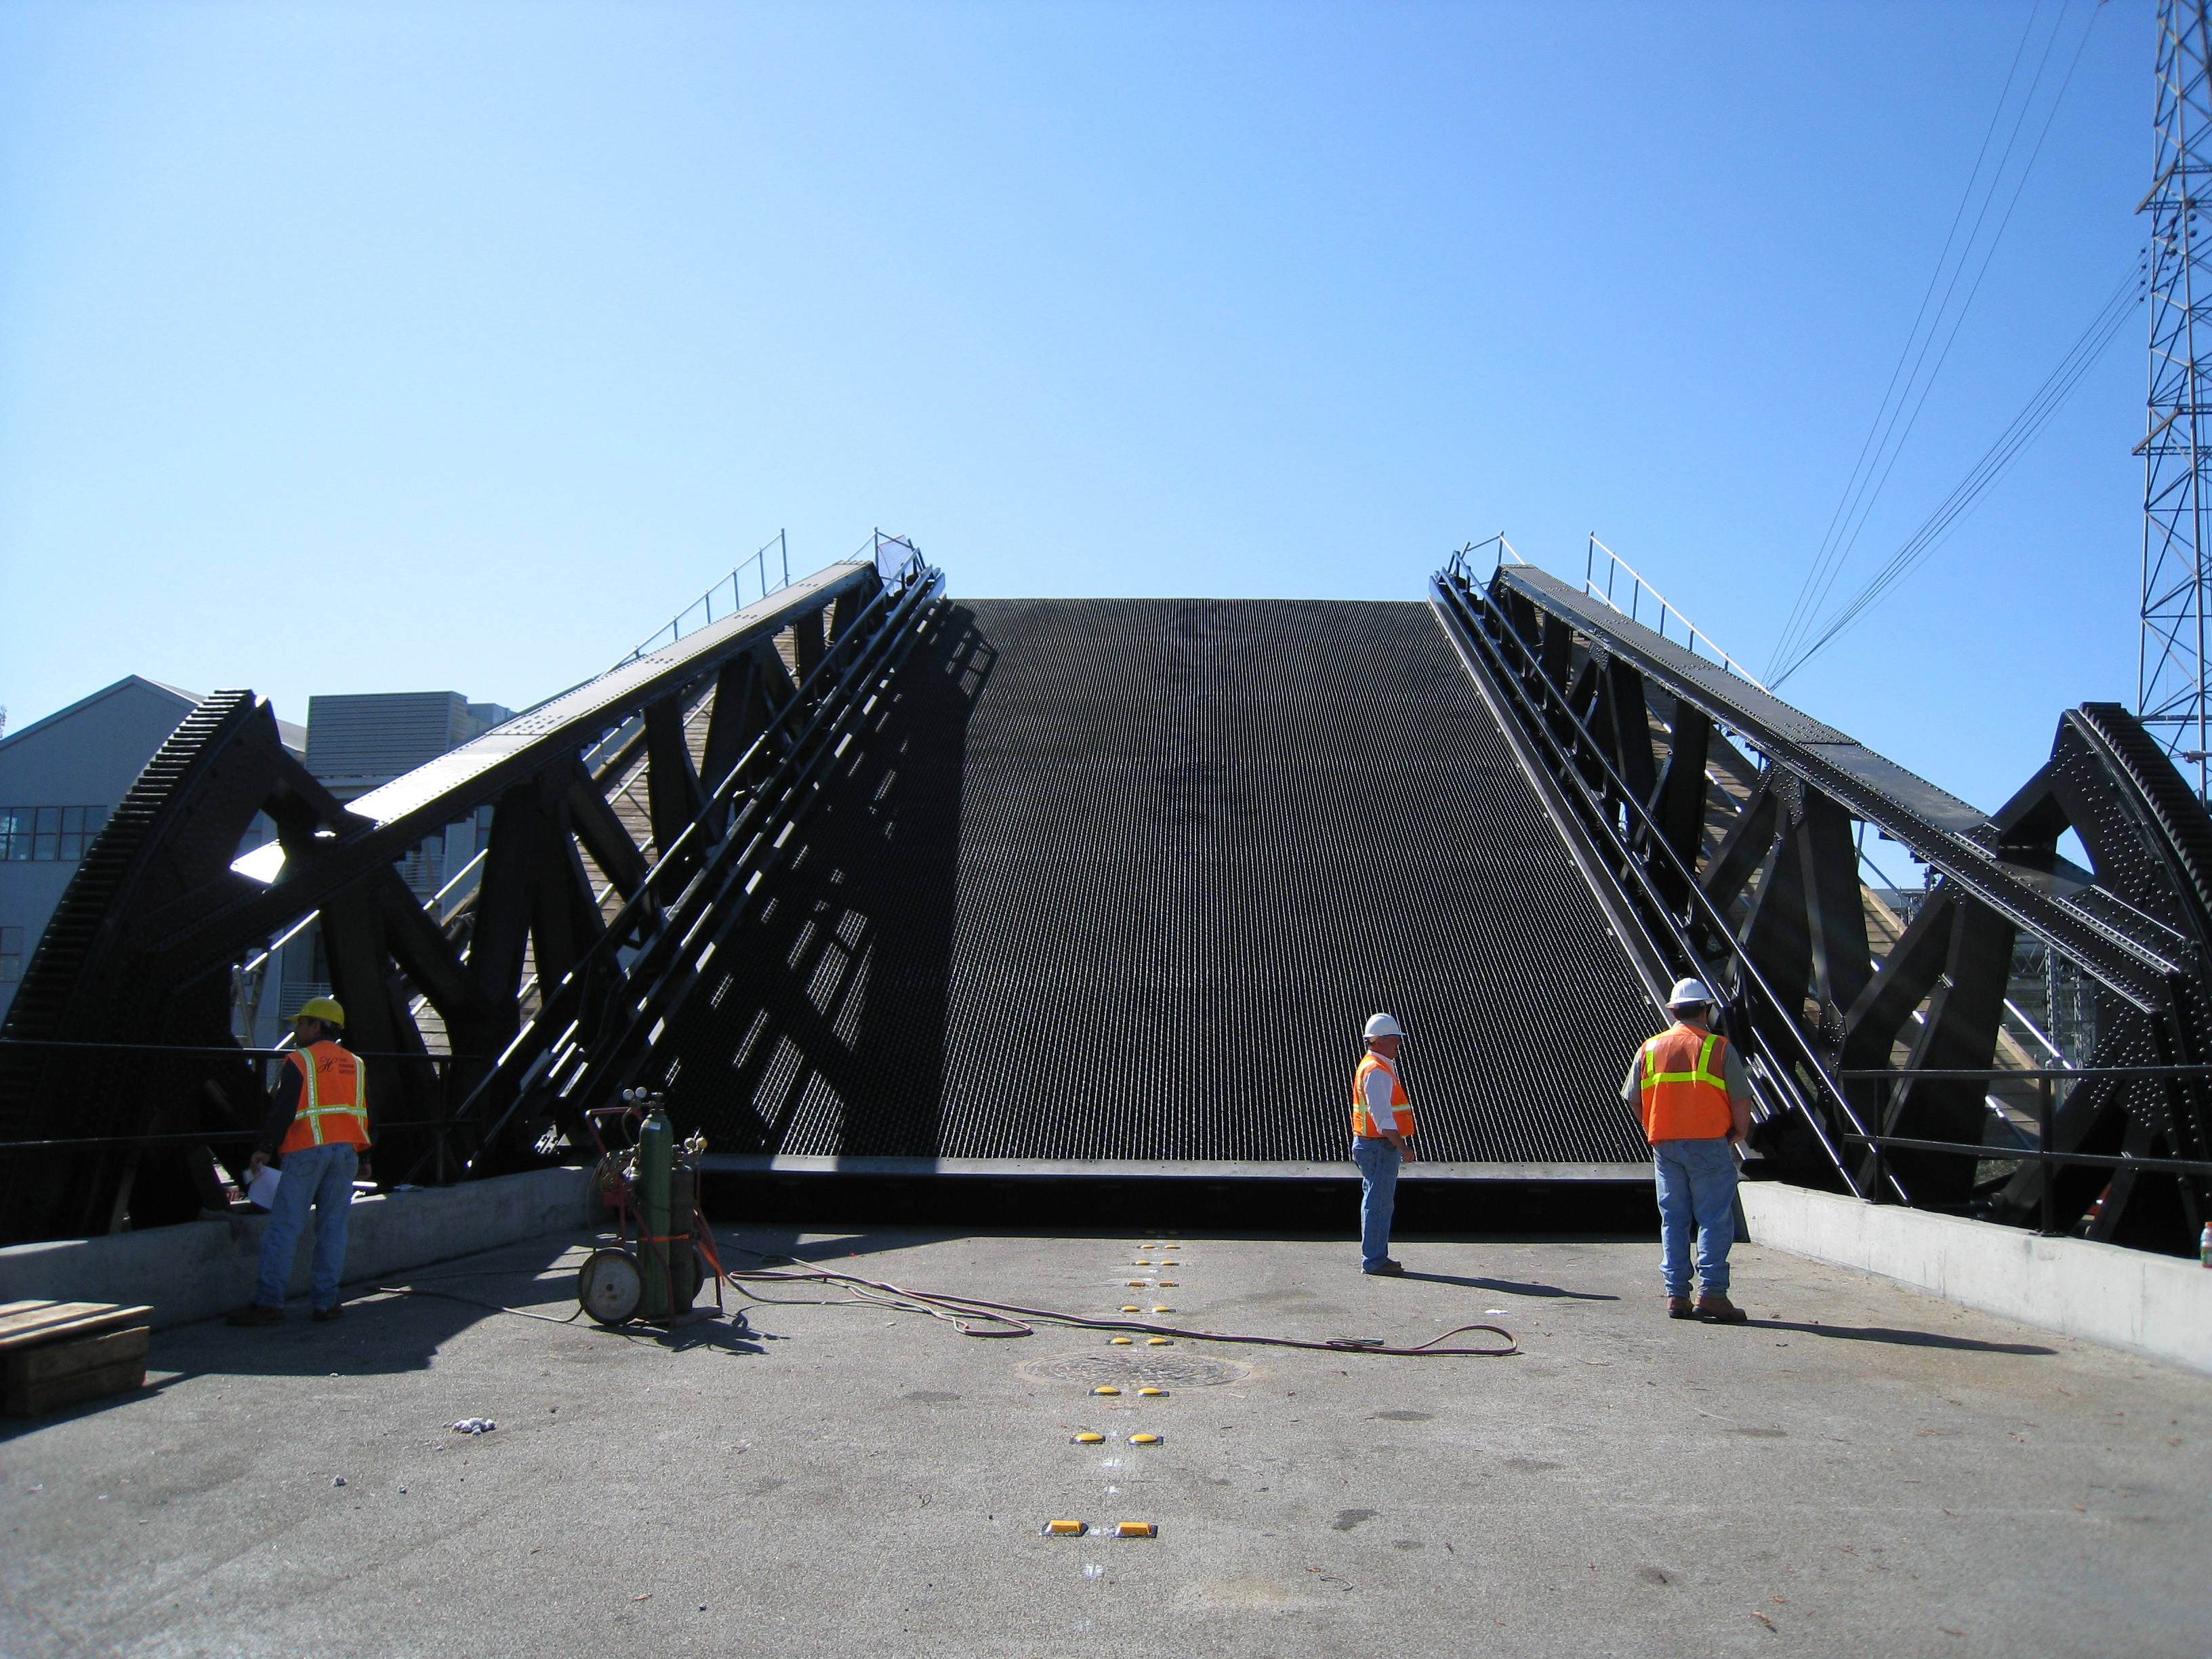 D St. Bridge Complete - Jeffco Painting & Coating, Inc.